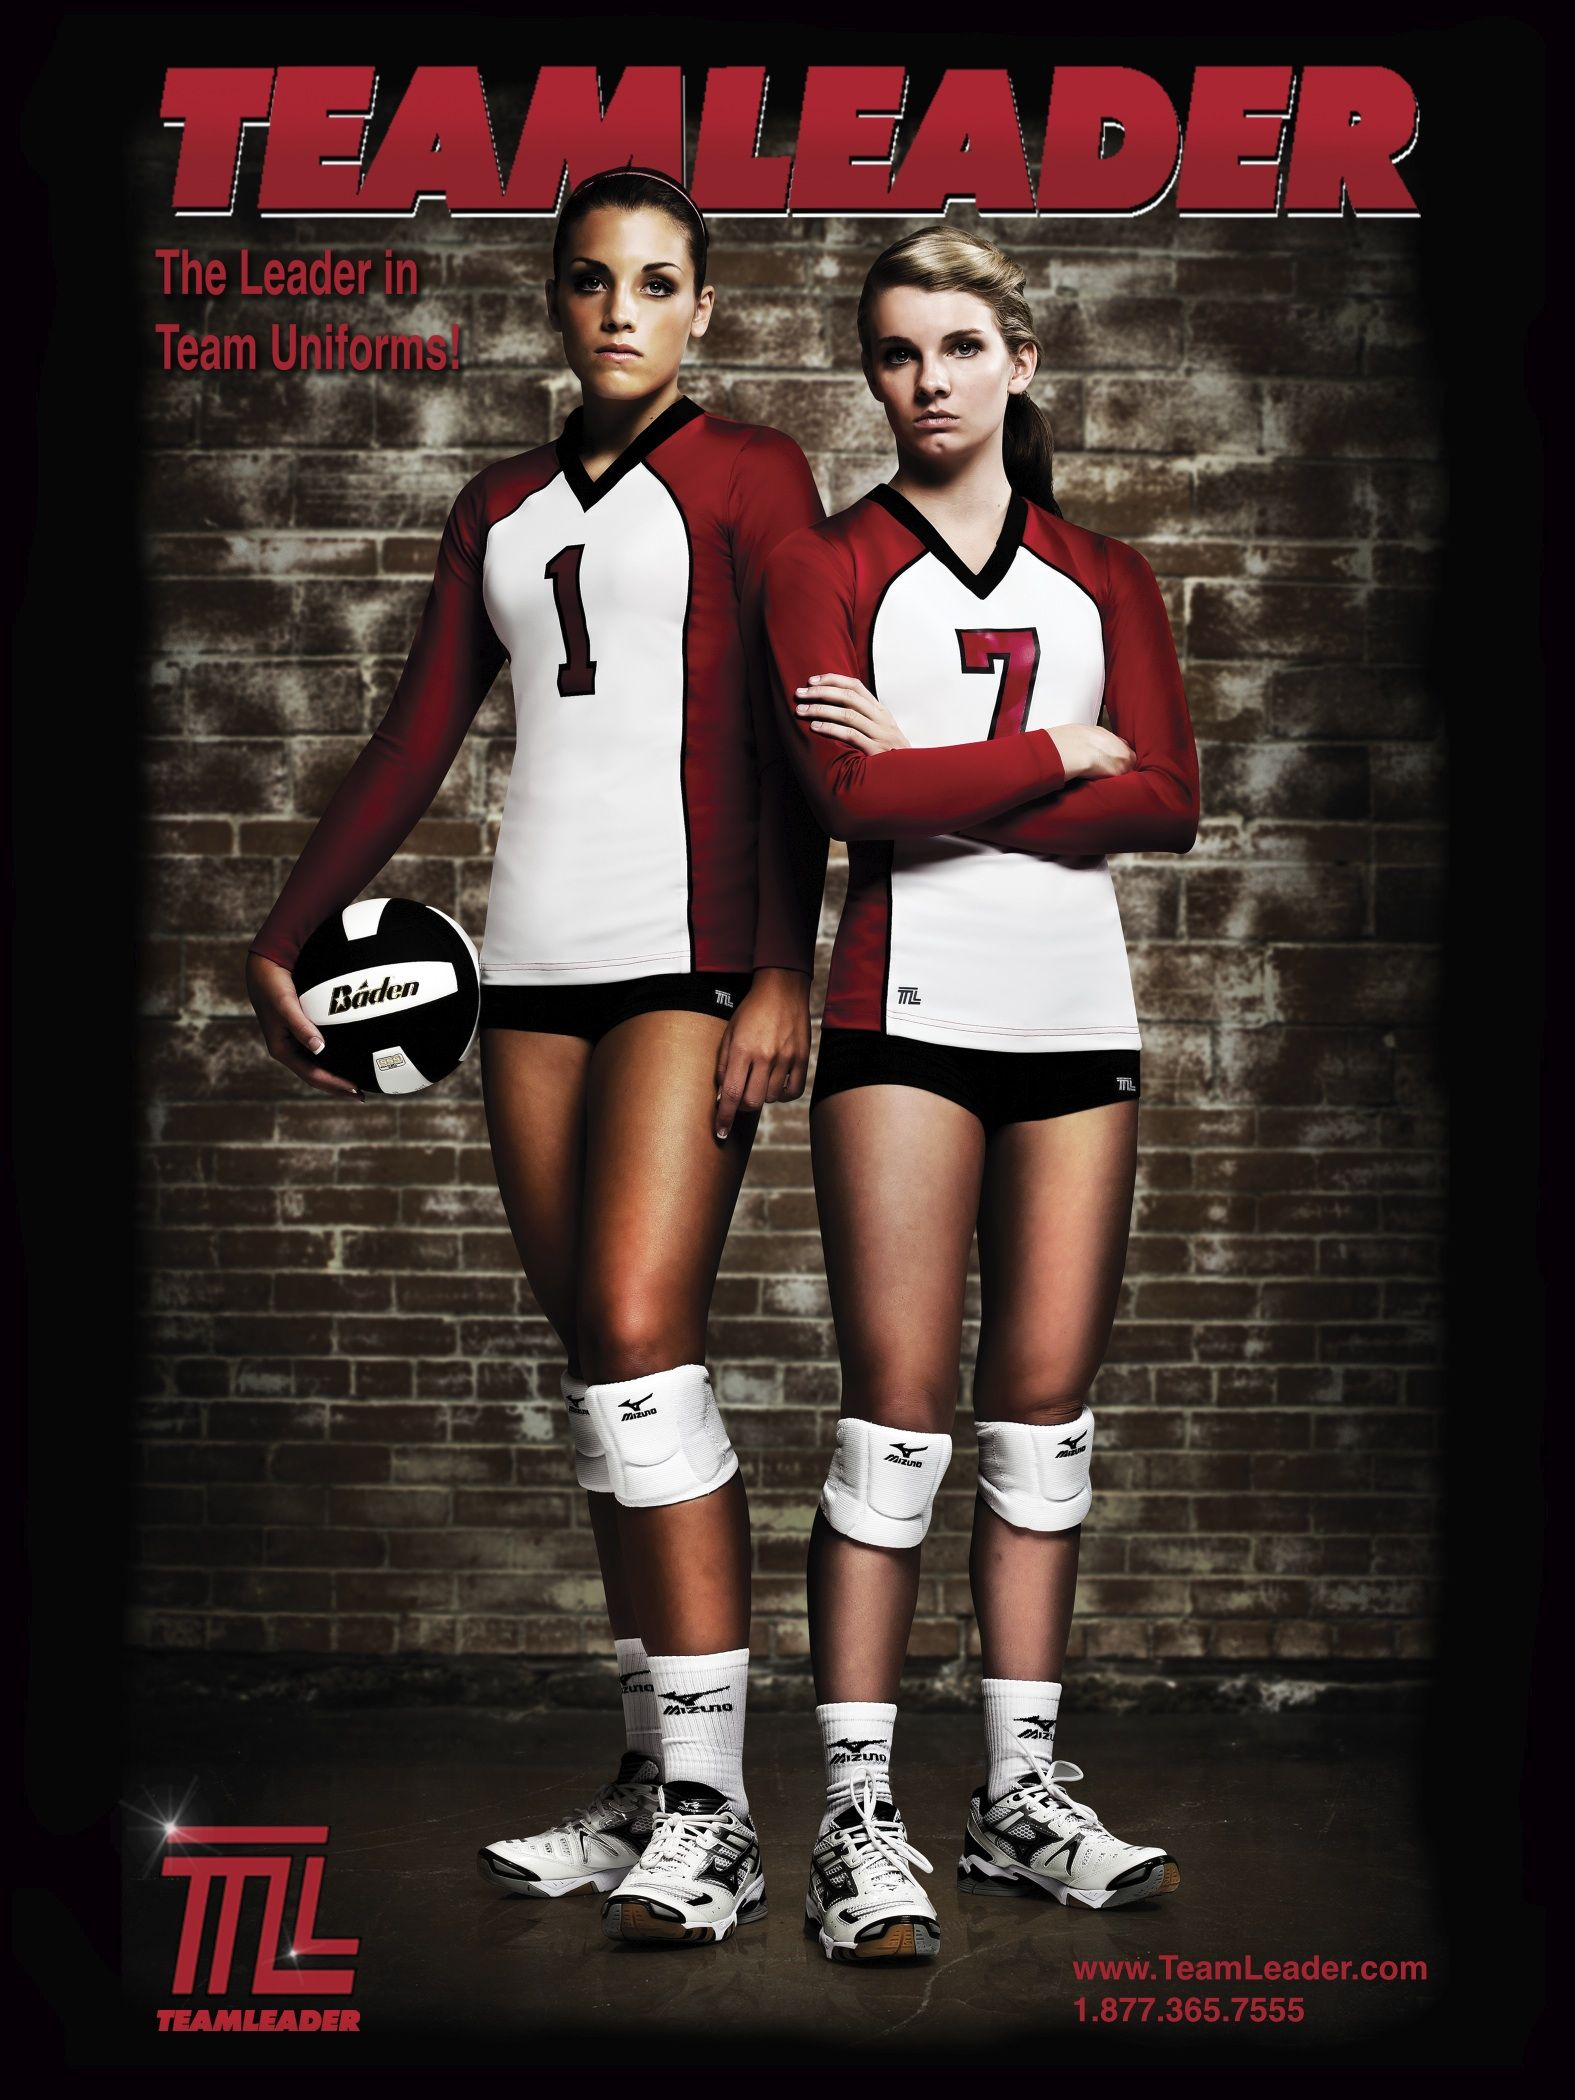 The Leader In Team Uniforms With Images Team Uniforms Volleyball Uniforms My Style